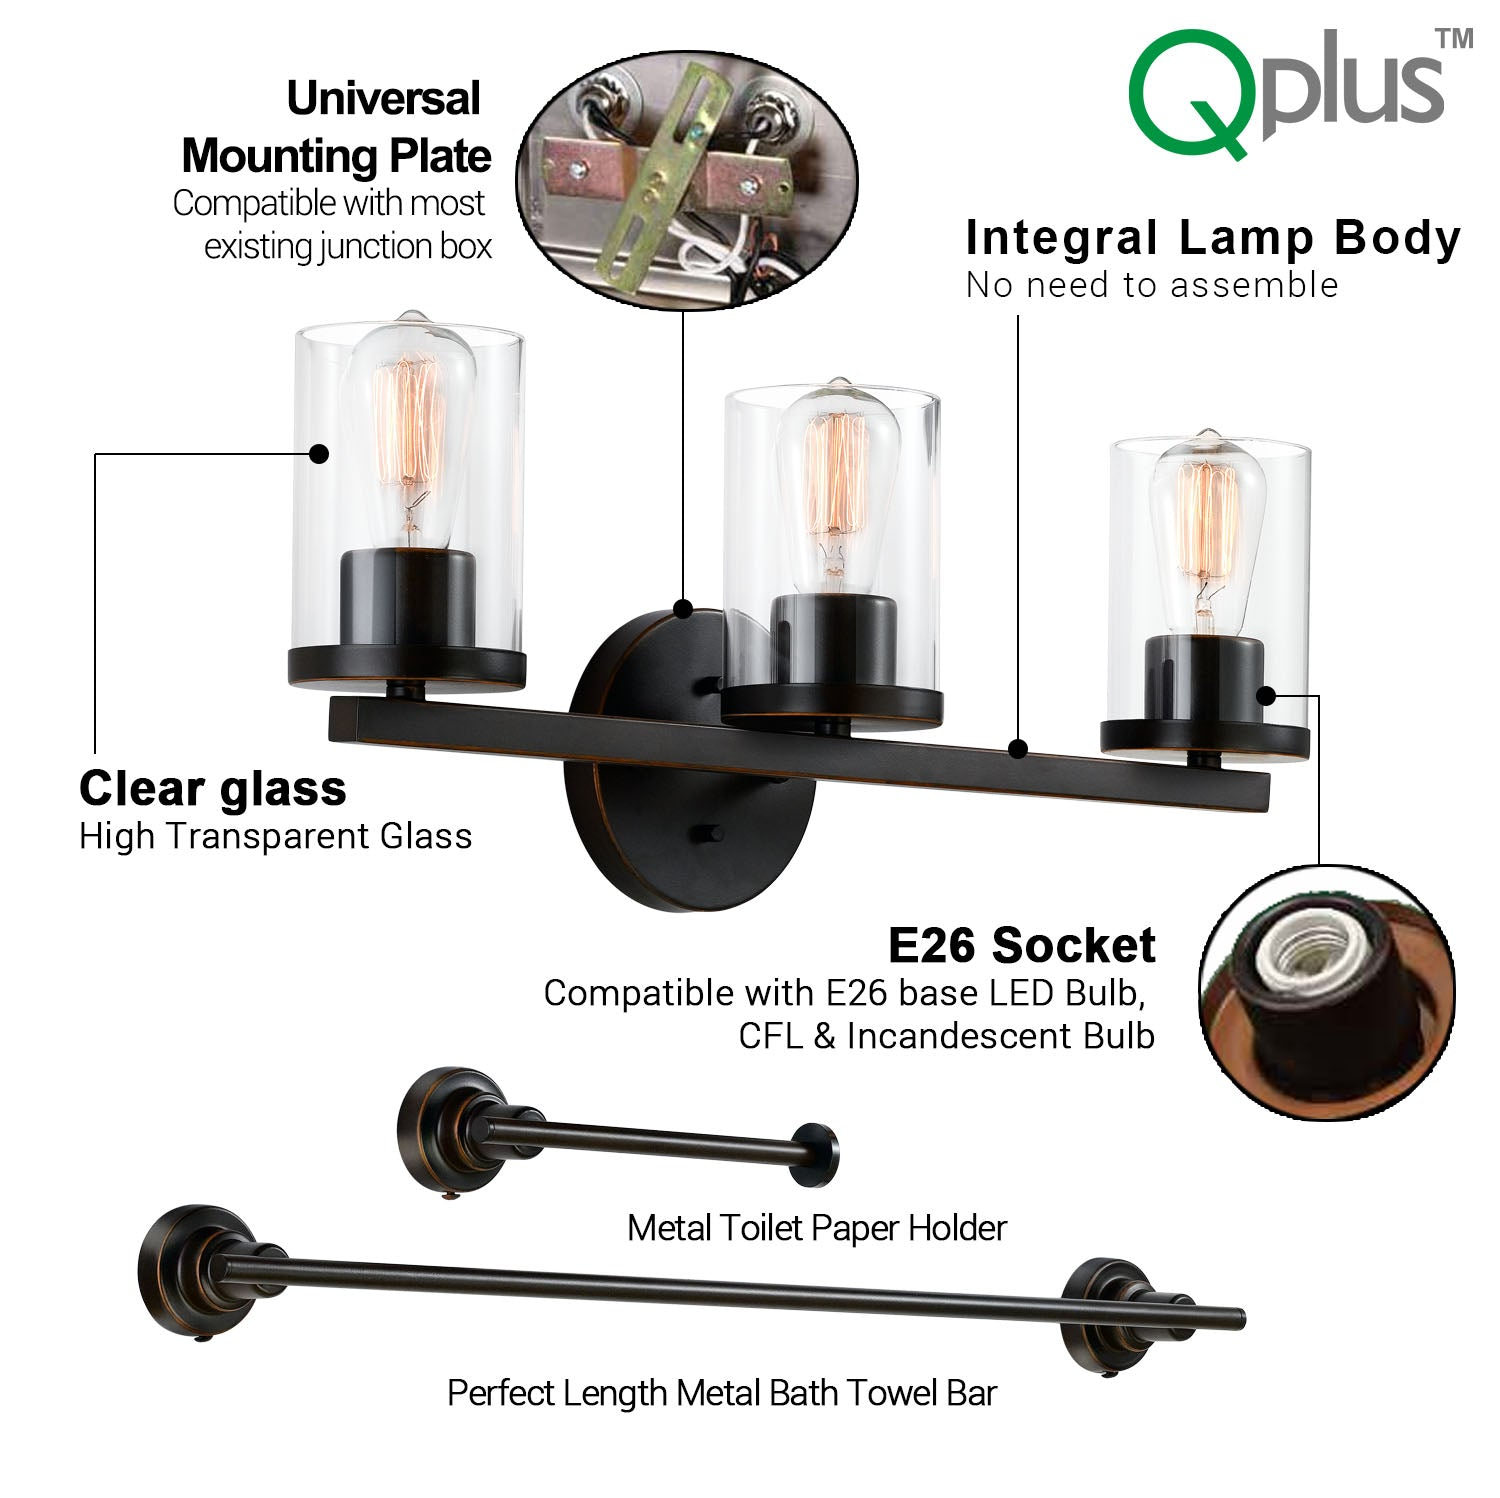 QPlus Bathroom Vanity Wall Light Fixture, 3 Lights in E26 Base & Clear Glass Sconces with Towel Bar & Toilet Paper Holder Accessories - Bronze Finish